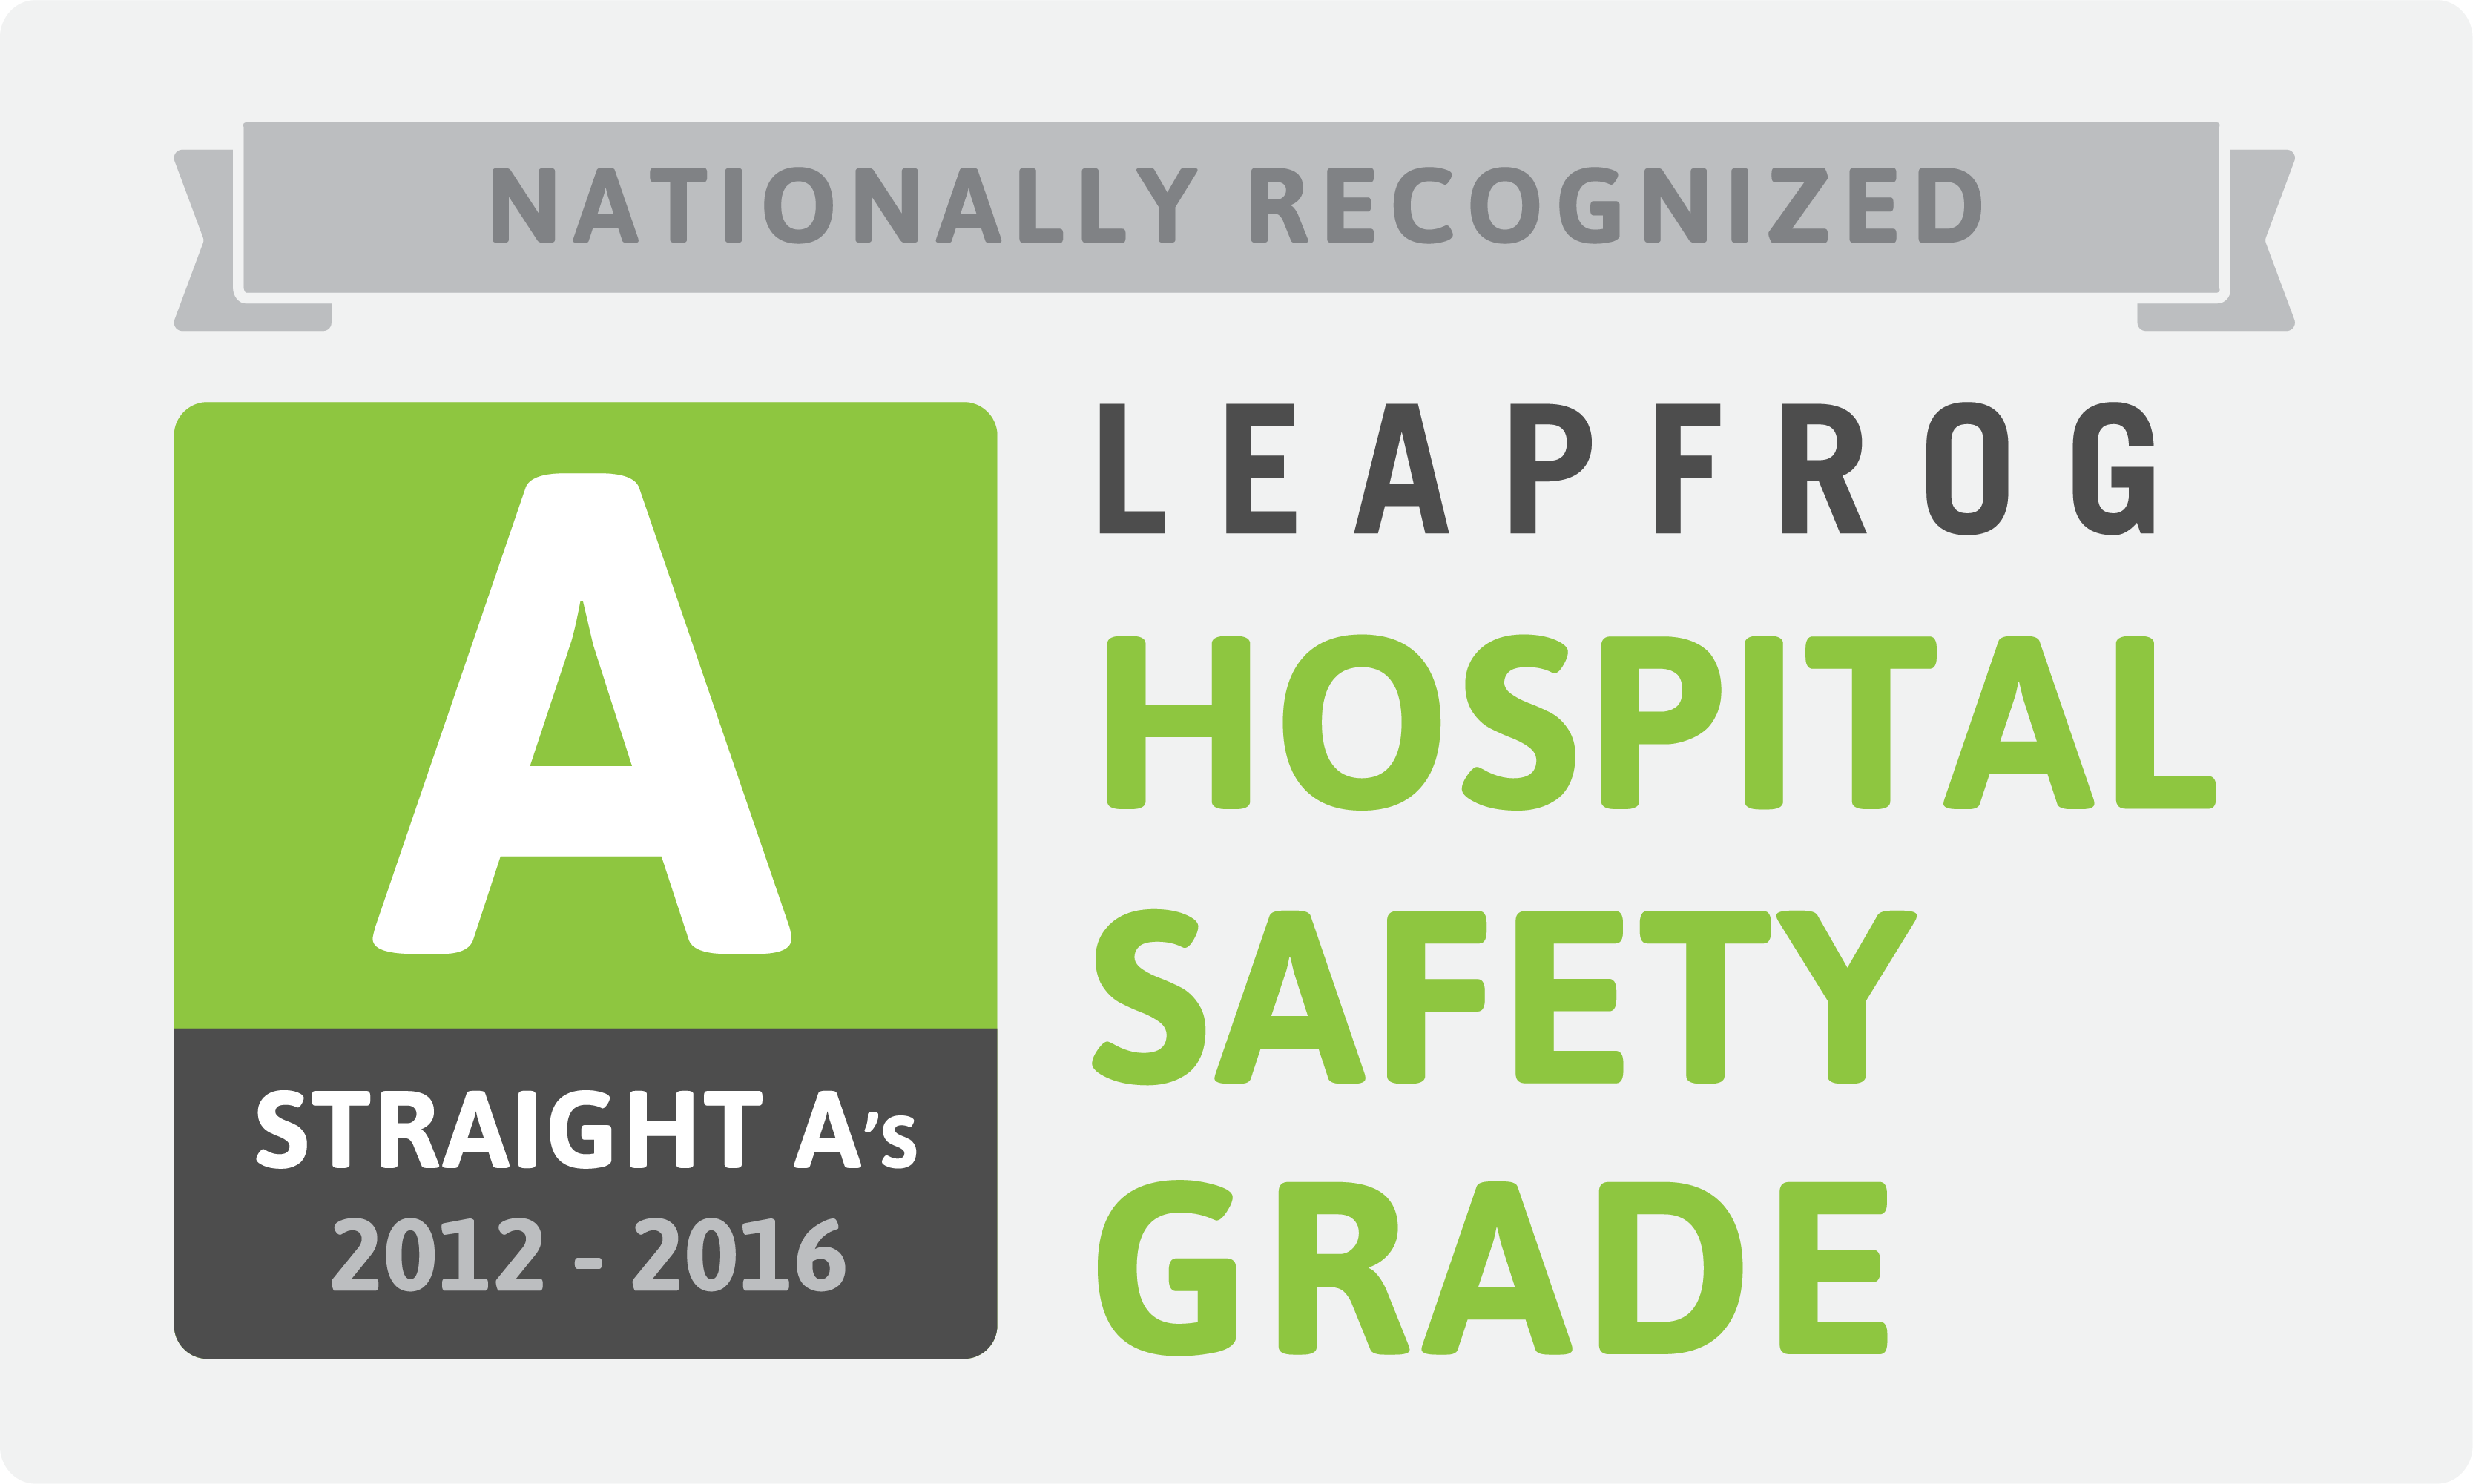 Nationally Recognized LeapFrog Hospital Safety Grade Straight A's 2012-2016